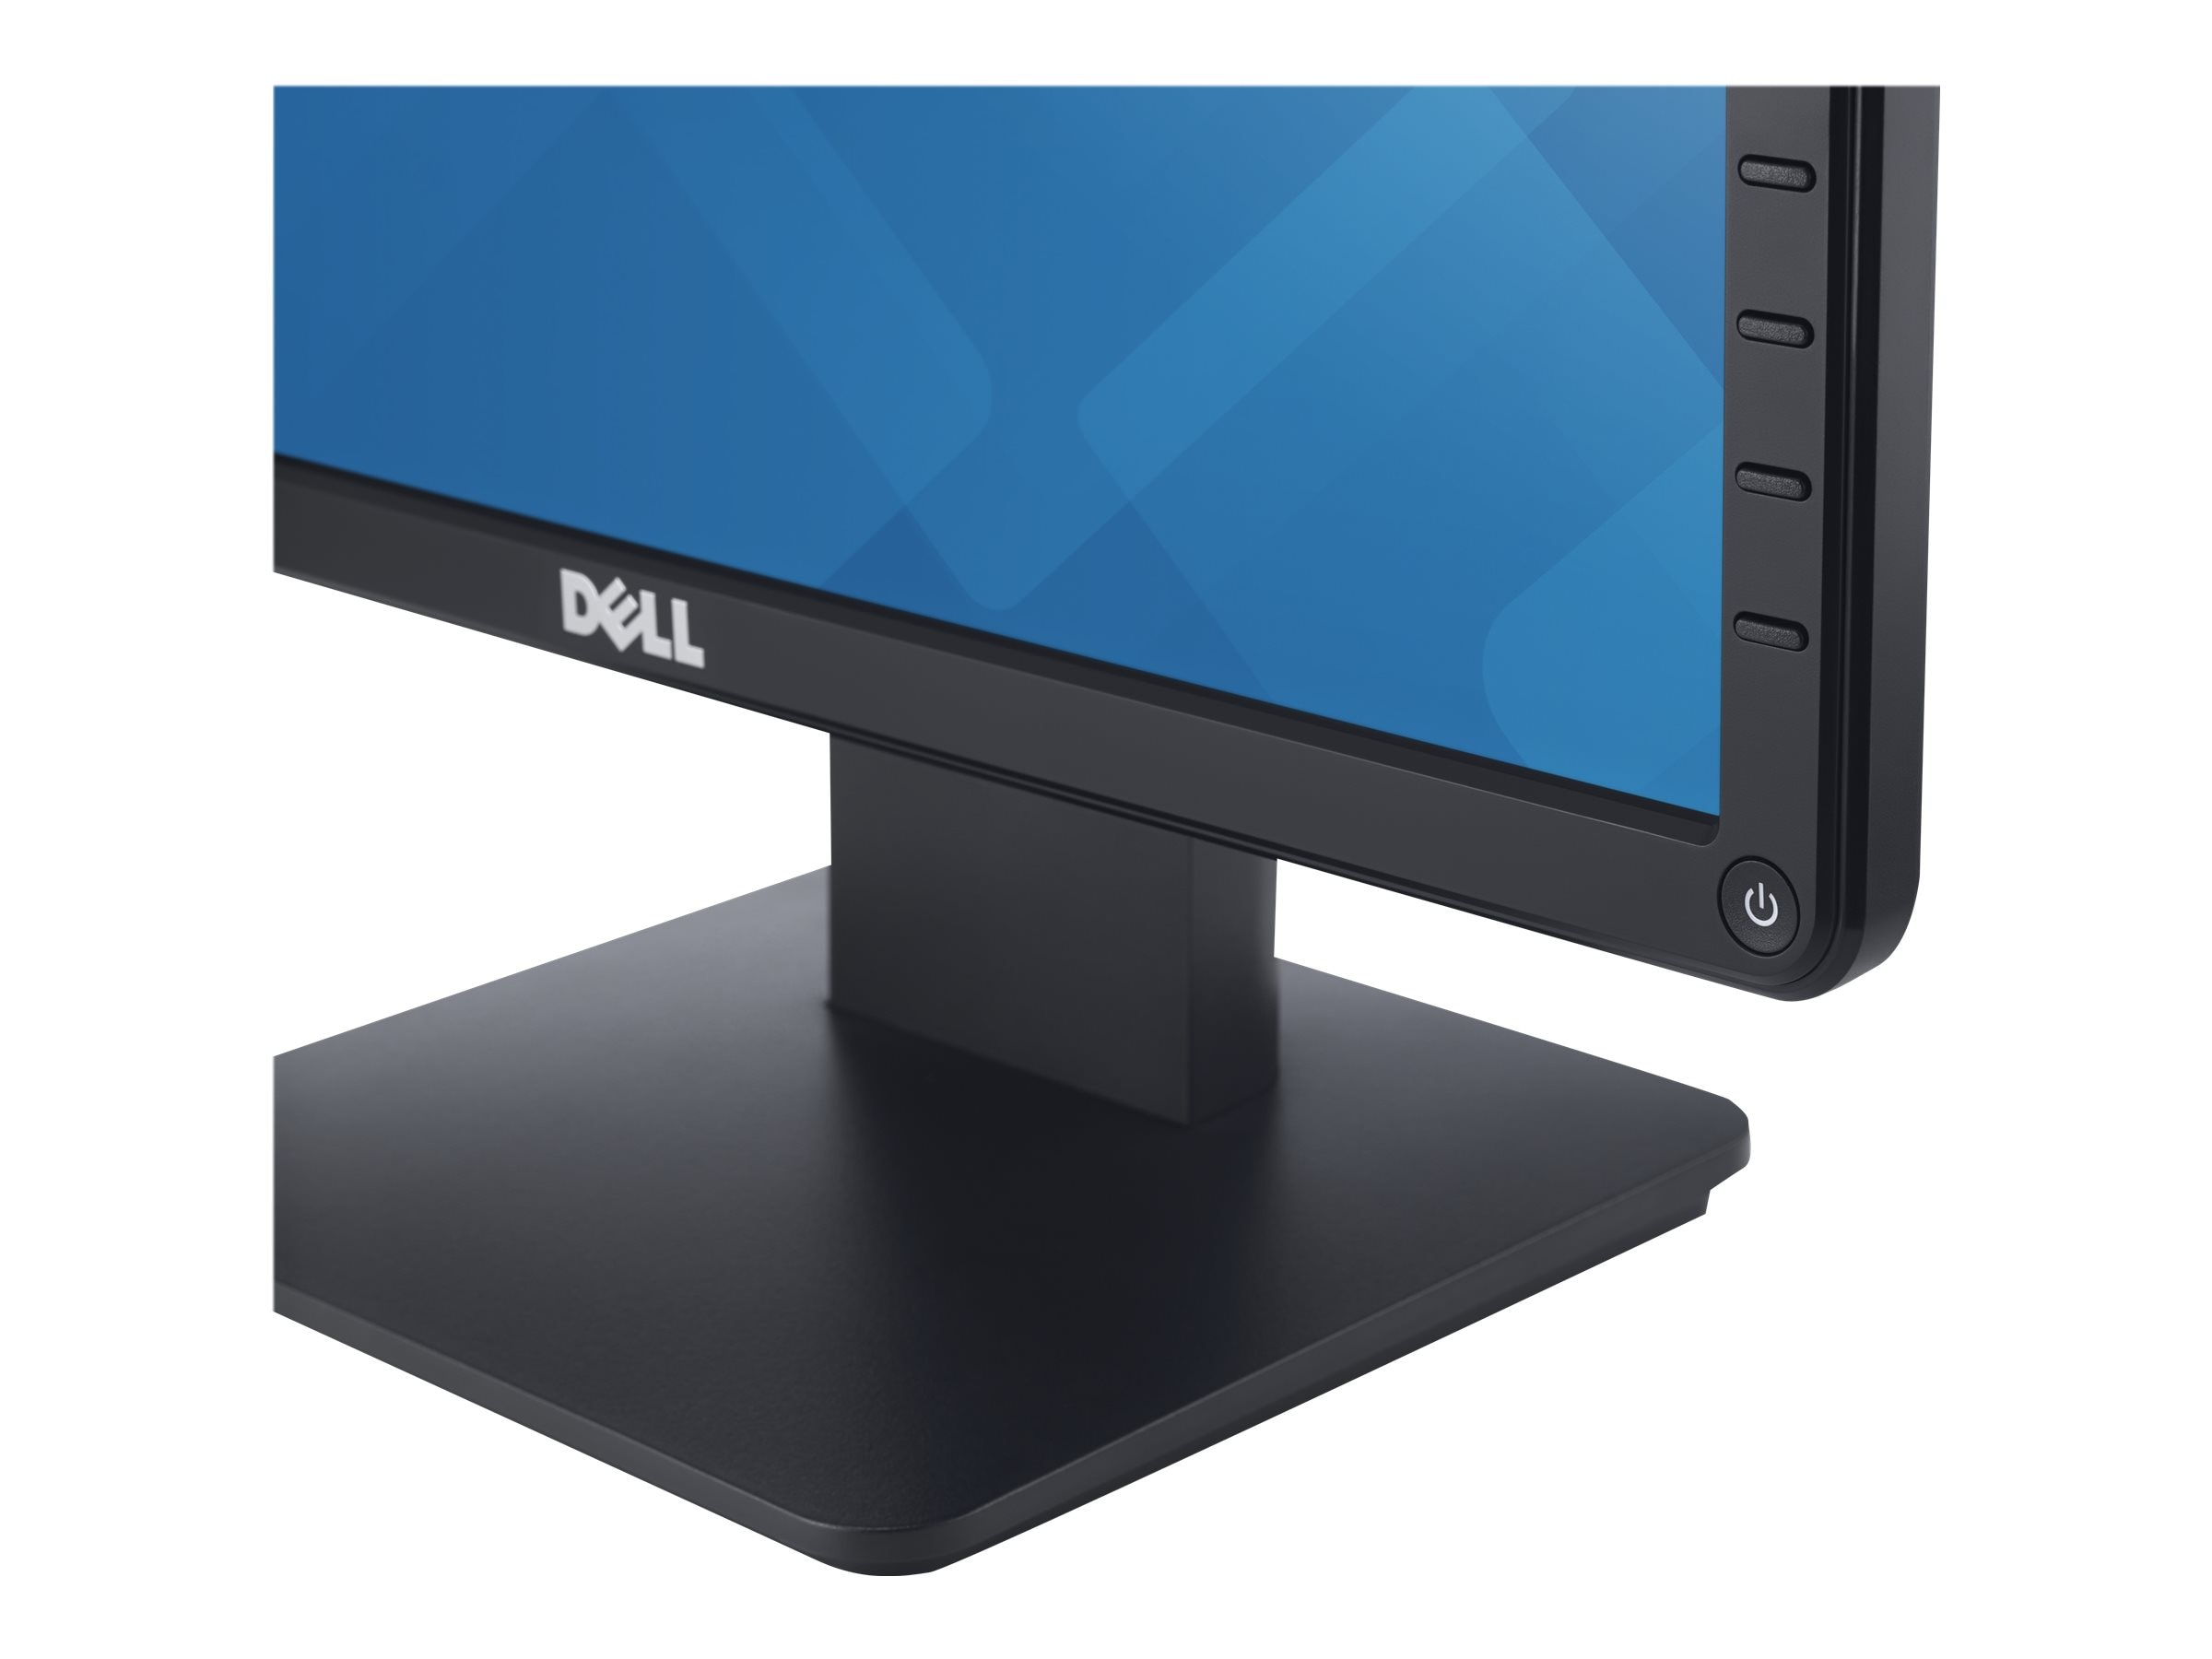 Dell 17 E1715S LED-LCD Monitor, Black, E1715S